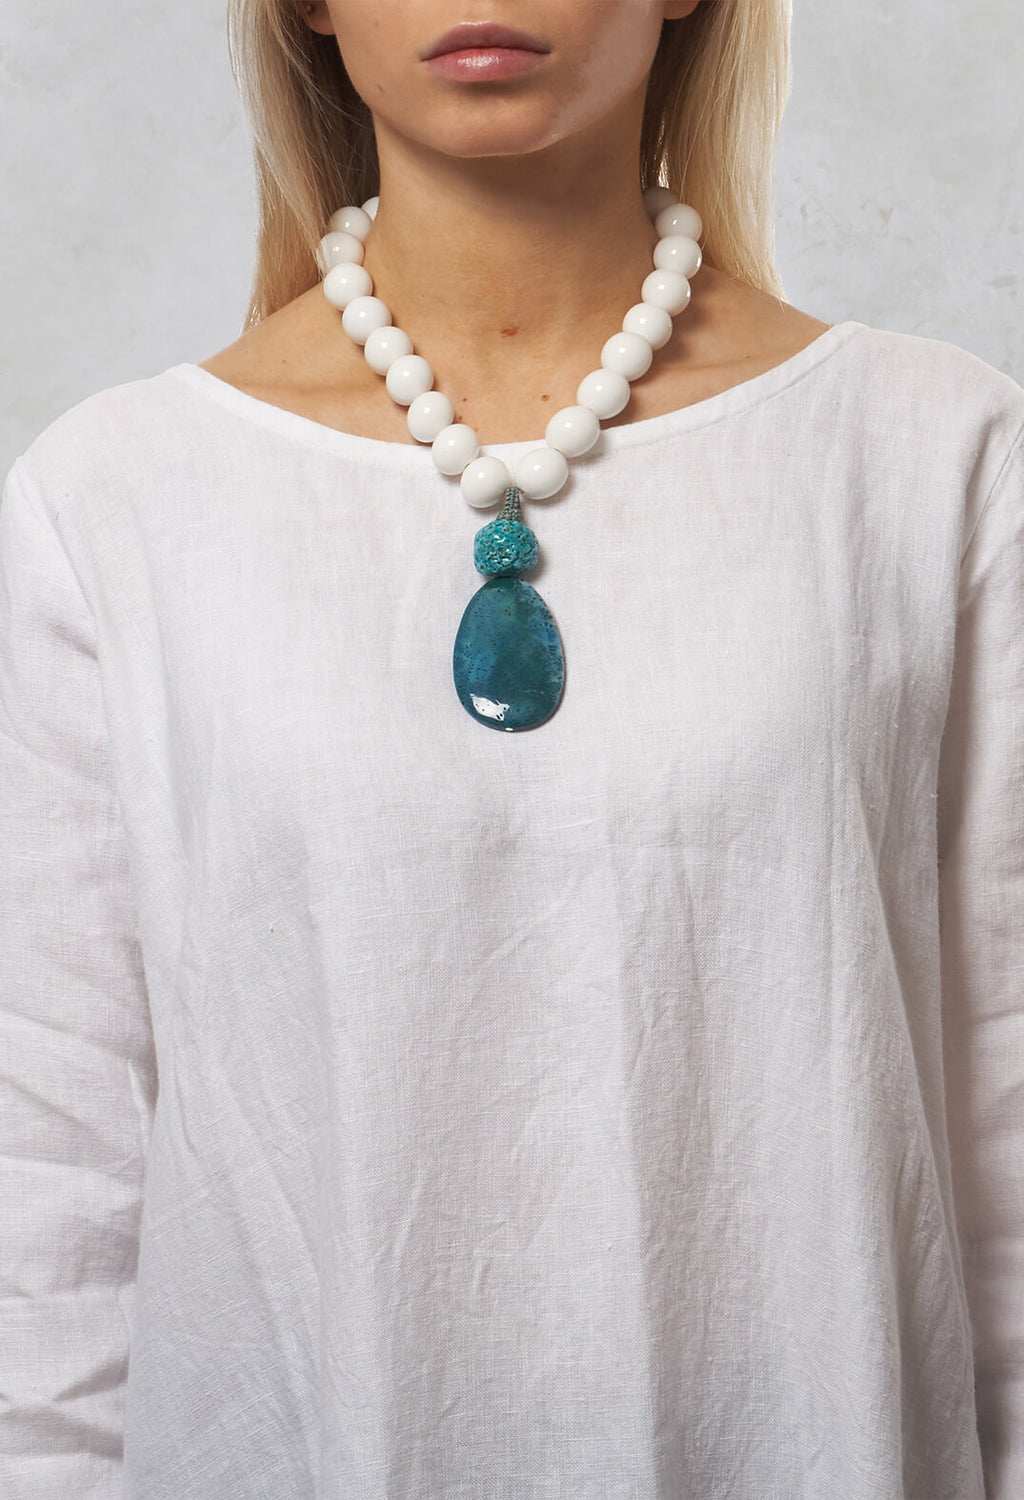 Beaded Necklace in White / Blue